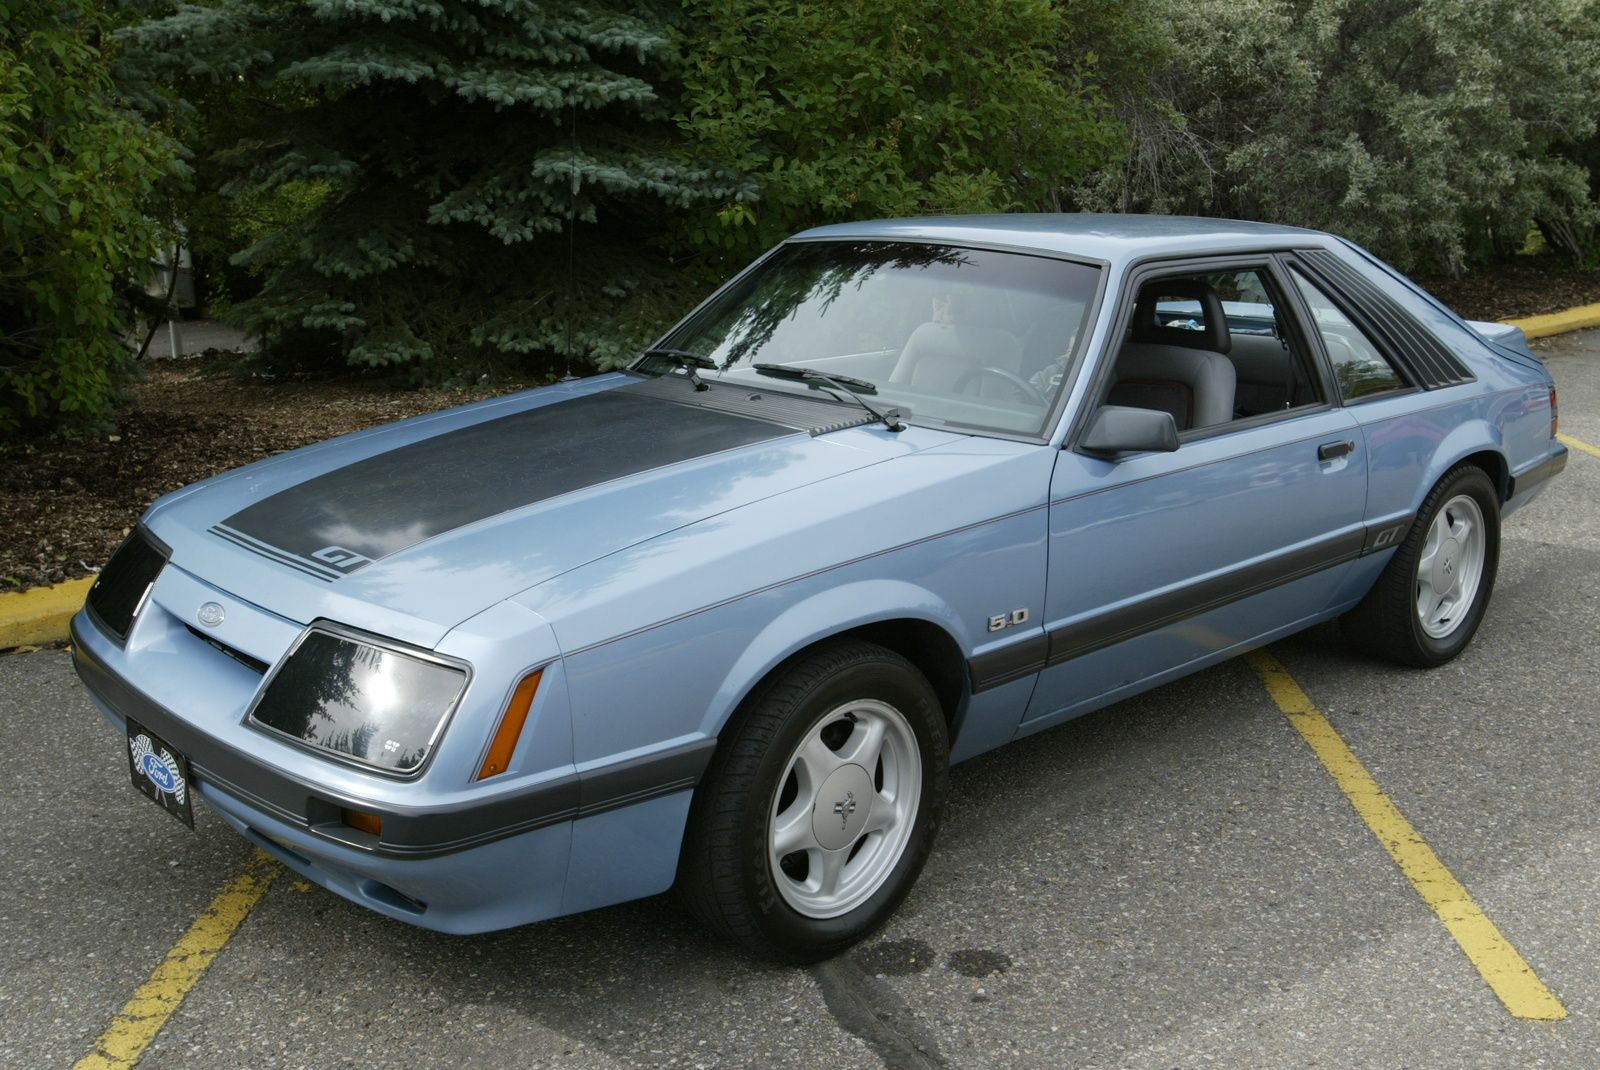 1985 mustang picture of 1985 ford mustang gt exterior. Black Bedroom Furniture Sets. Home Design Ideas